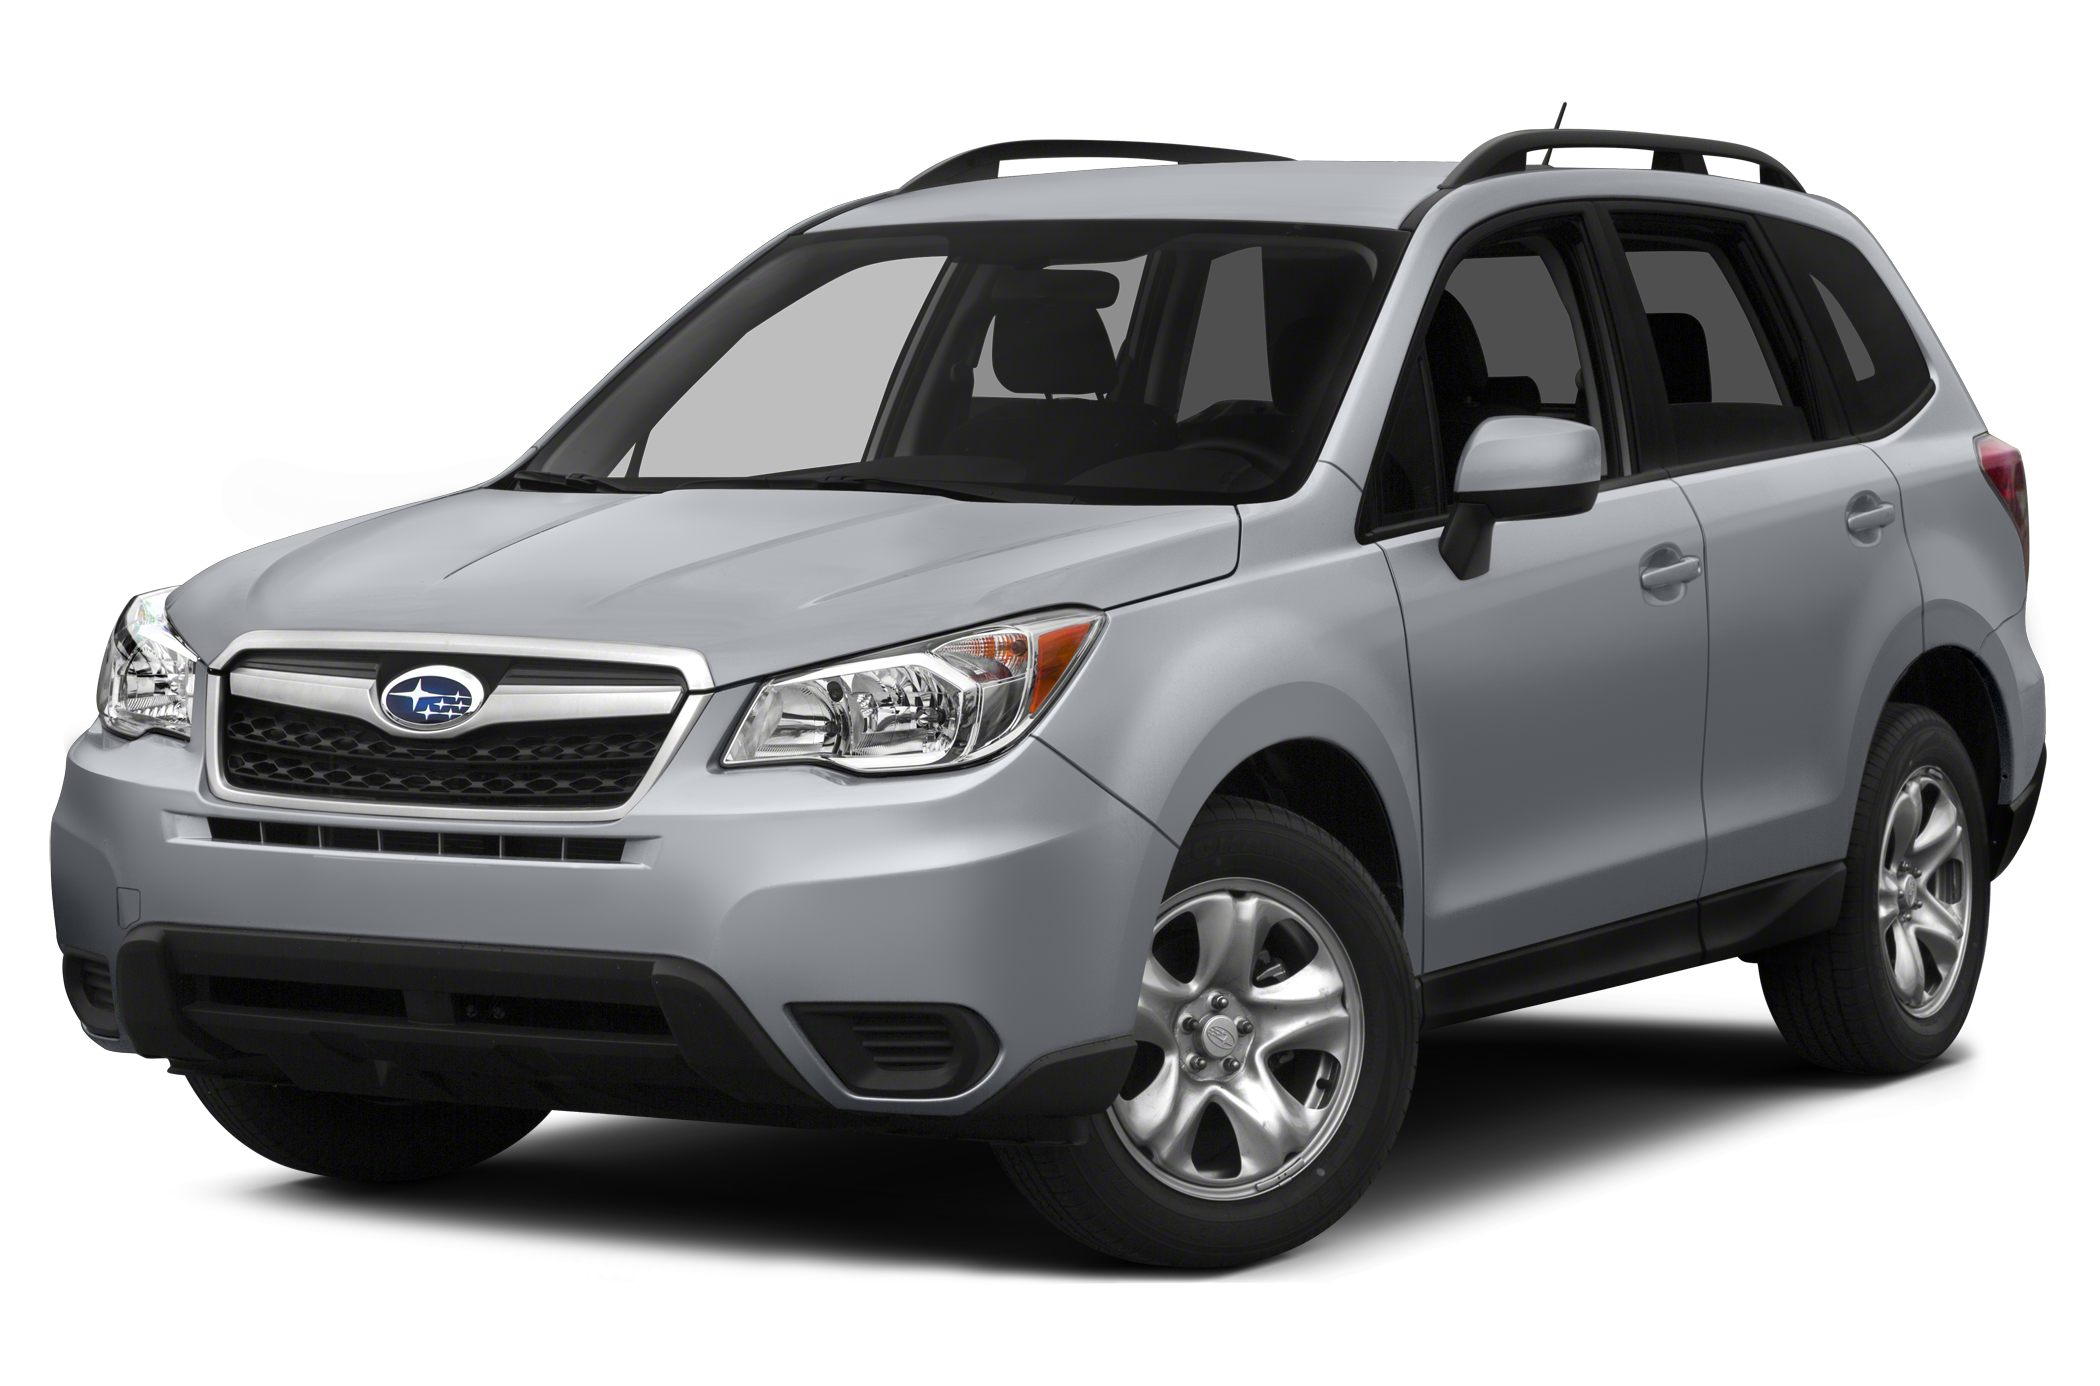 2015 Subaru Forester 2.5i Premium SUV for sale in Gastonia for $27,093 with 0 miles.